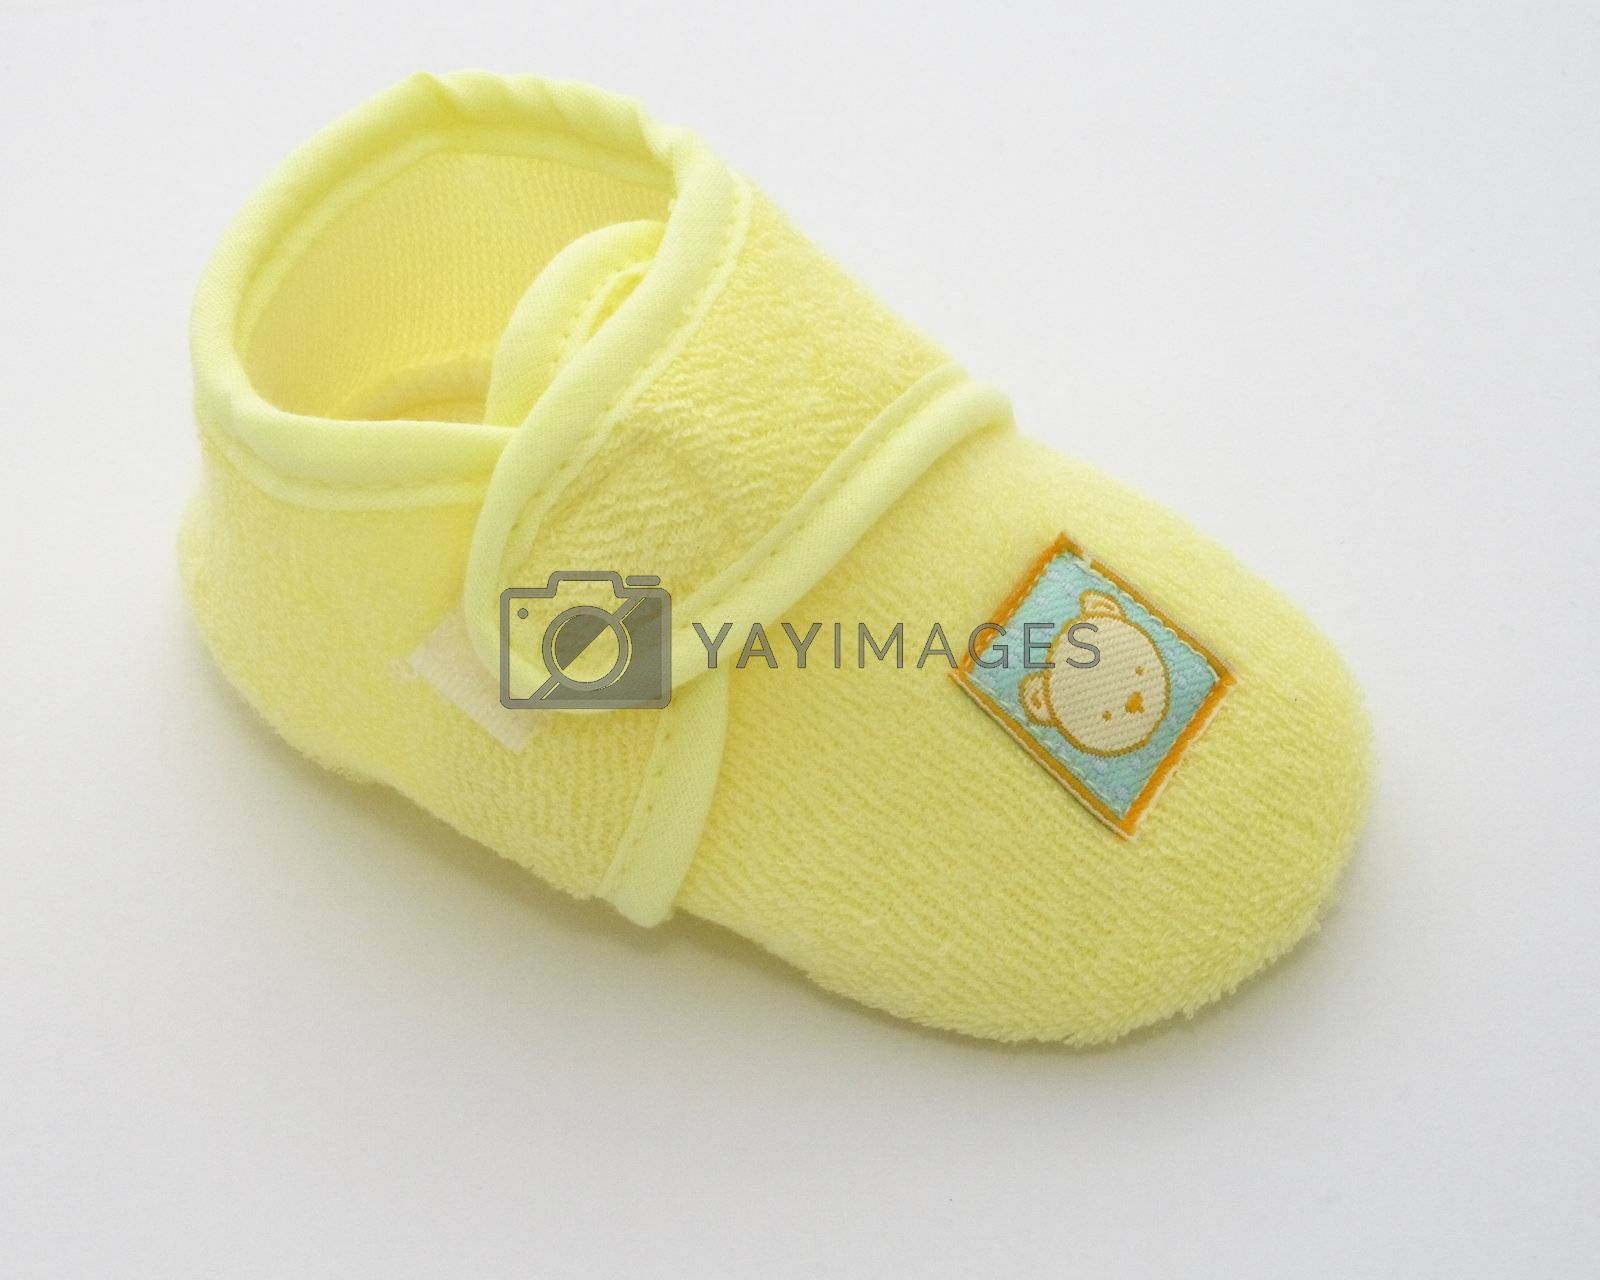 one babies shoe in a yellow towelling fabric